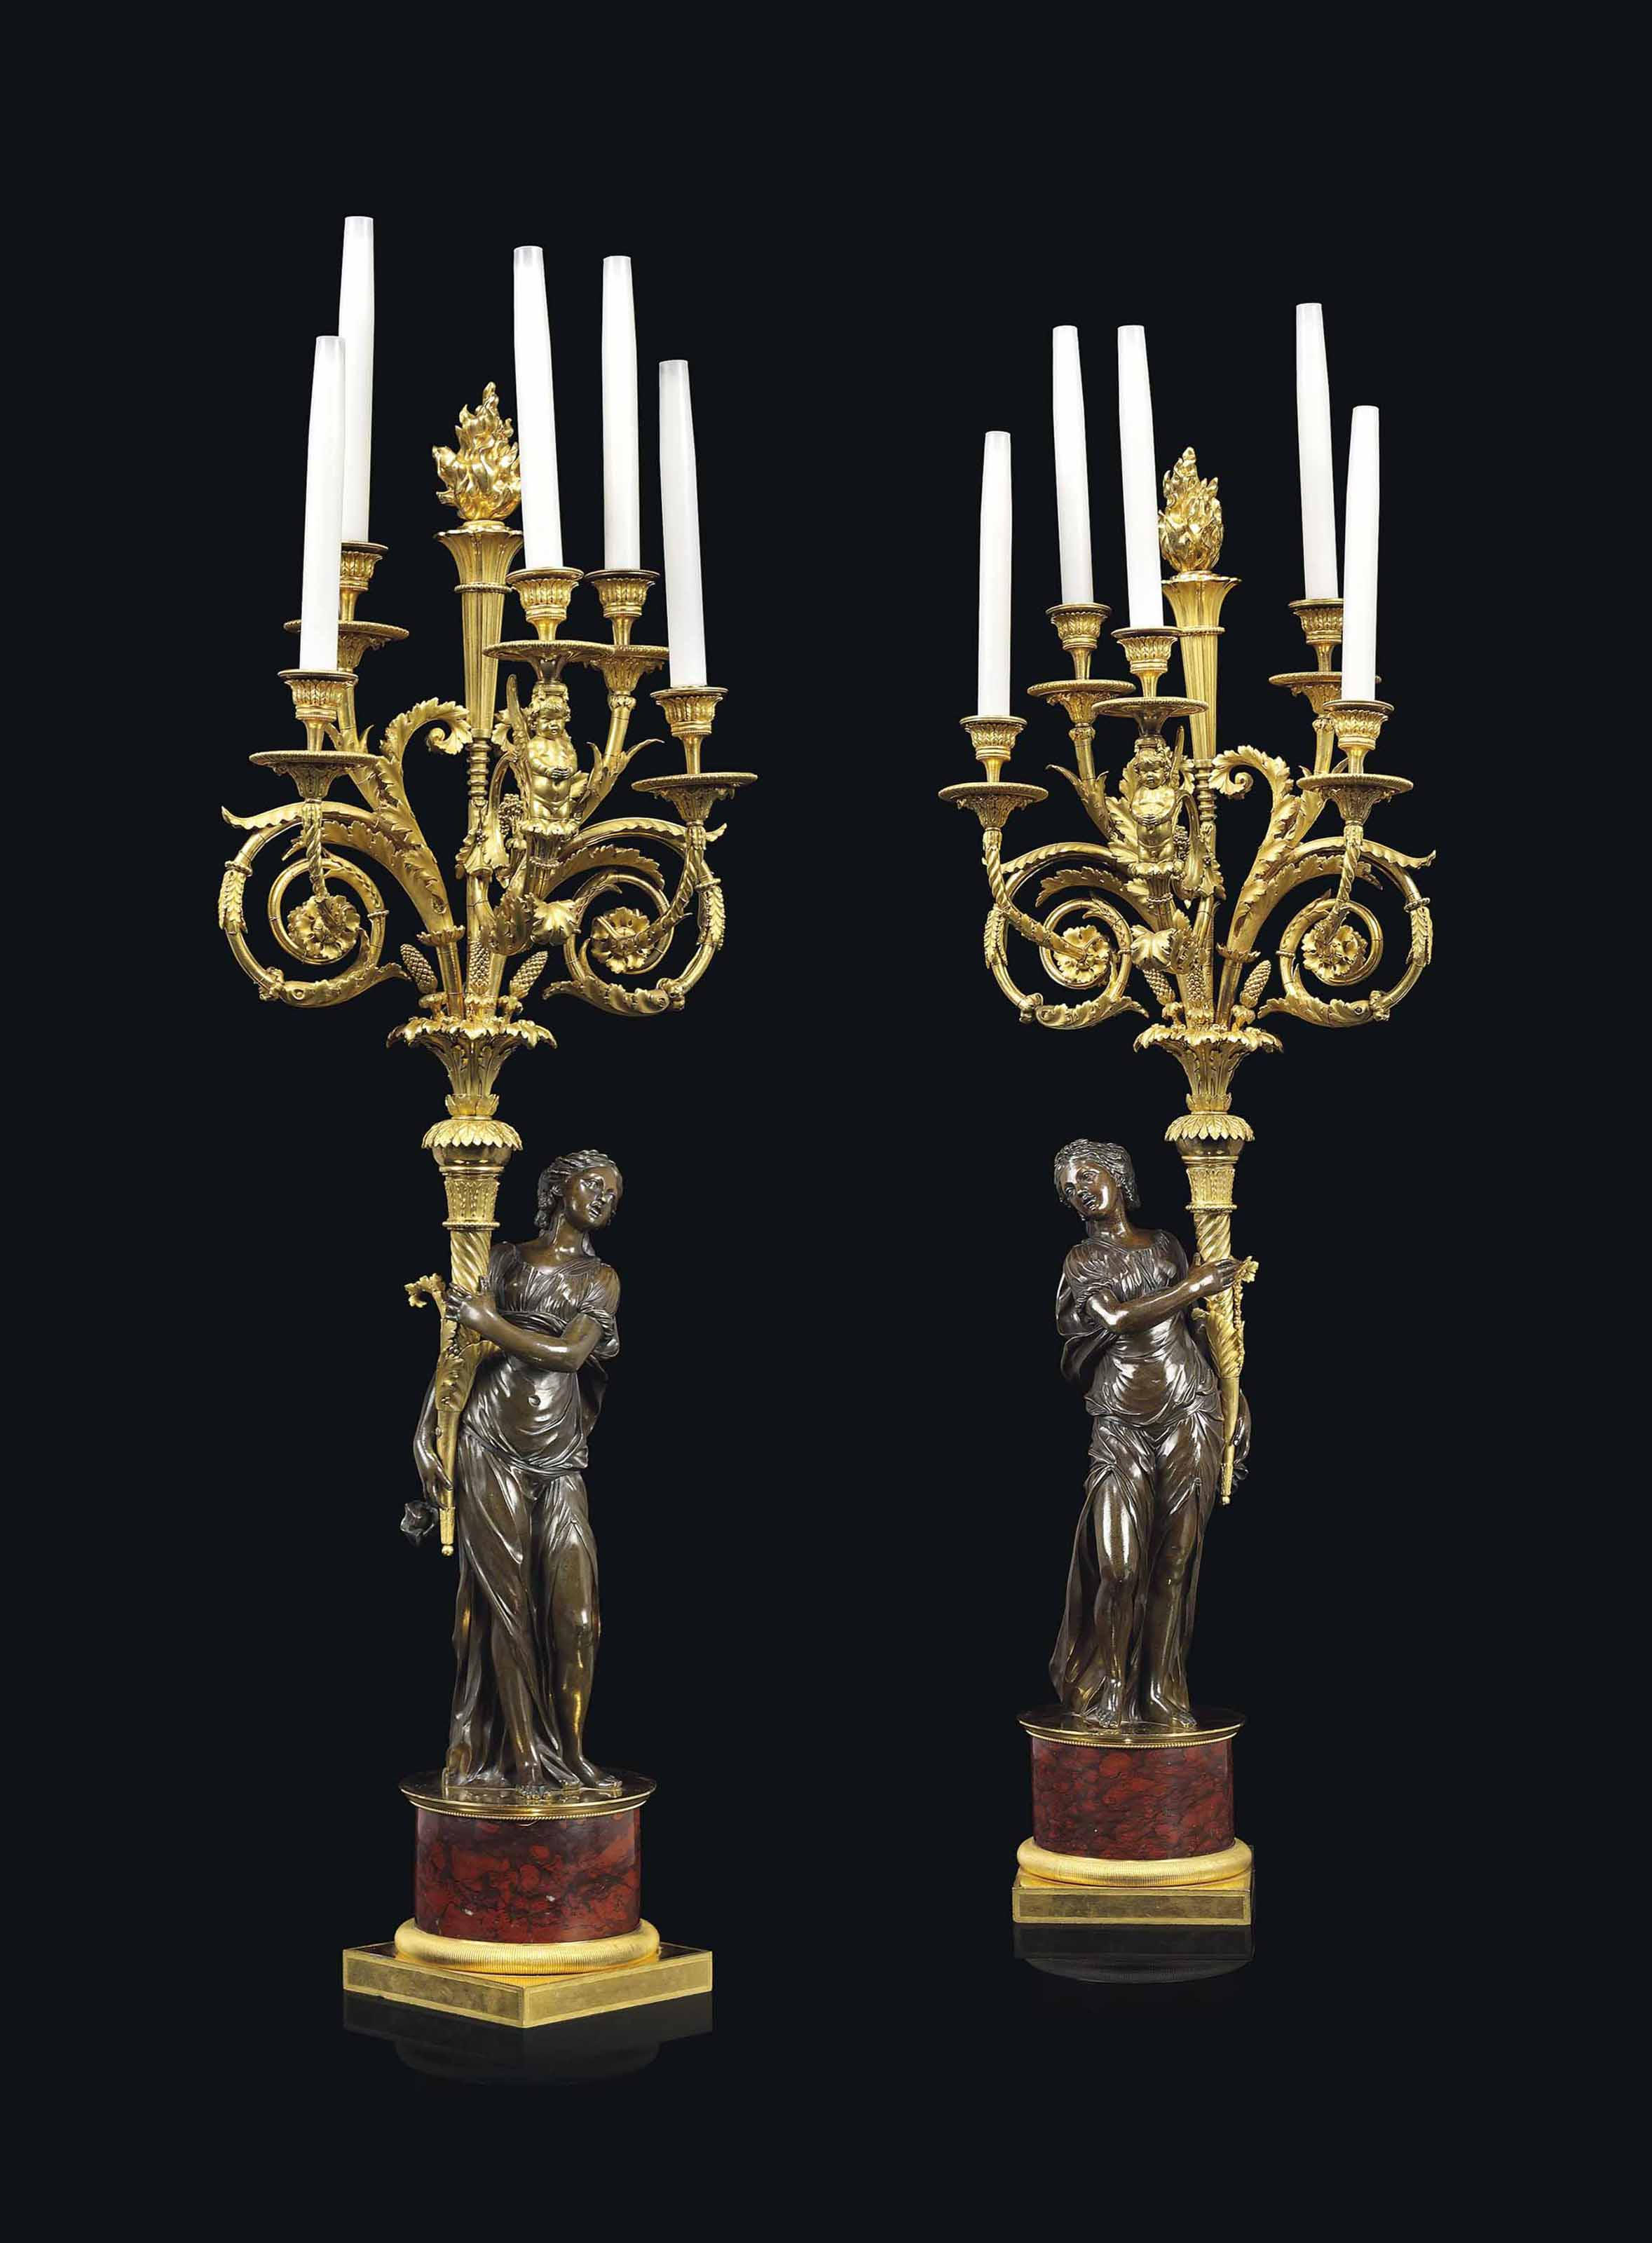 A PAIR OF LOUIS XVI PATINATED-BRONZE AND ORMOLU FIVE-LIGHT CANDELABRA